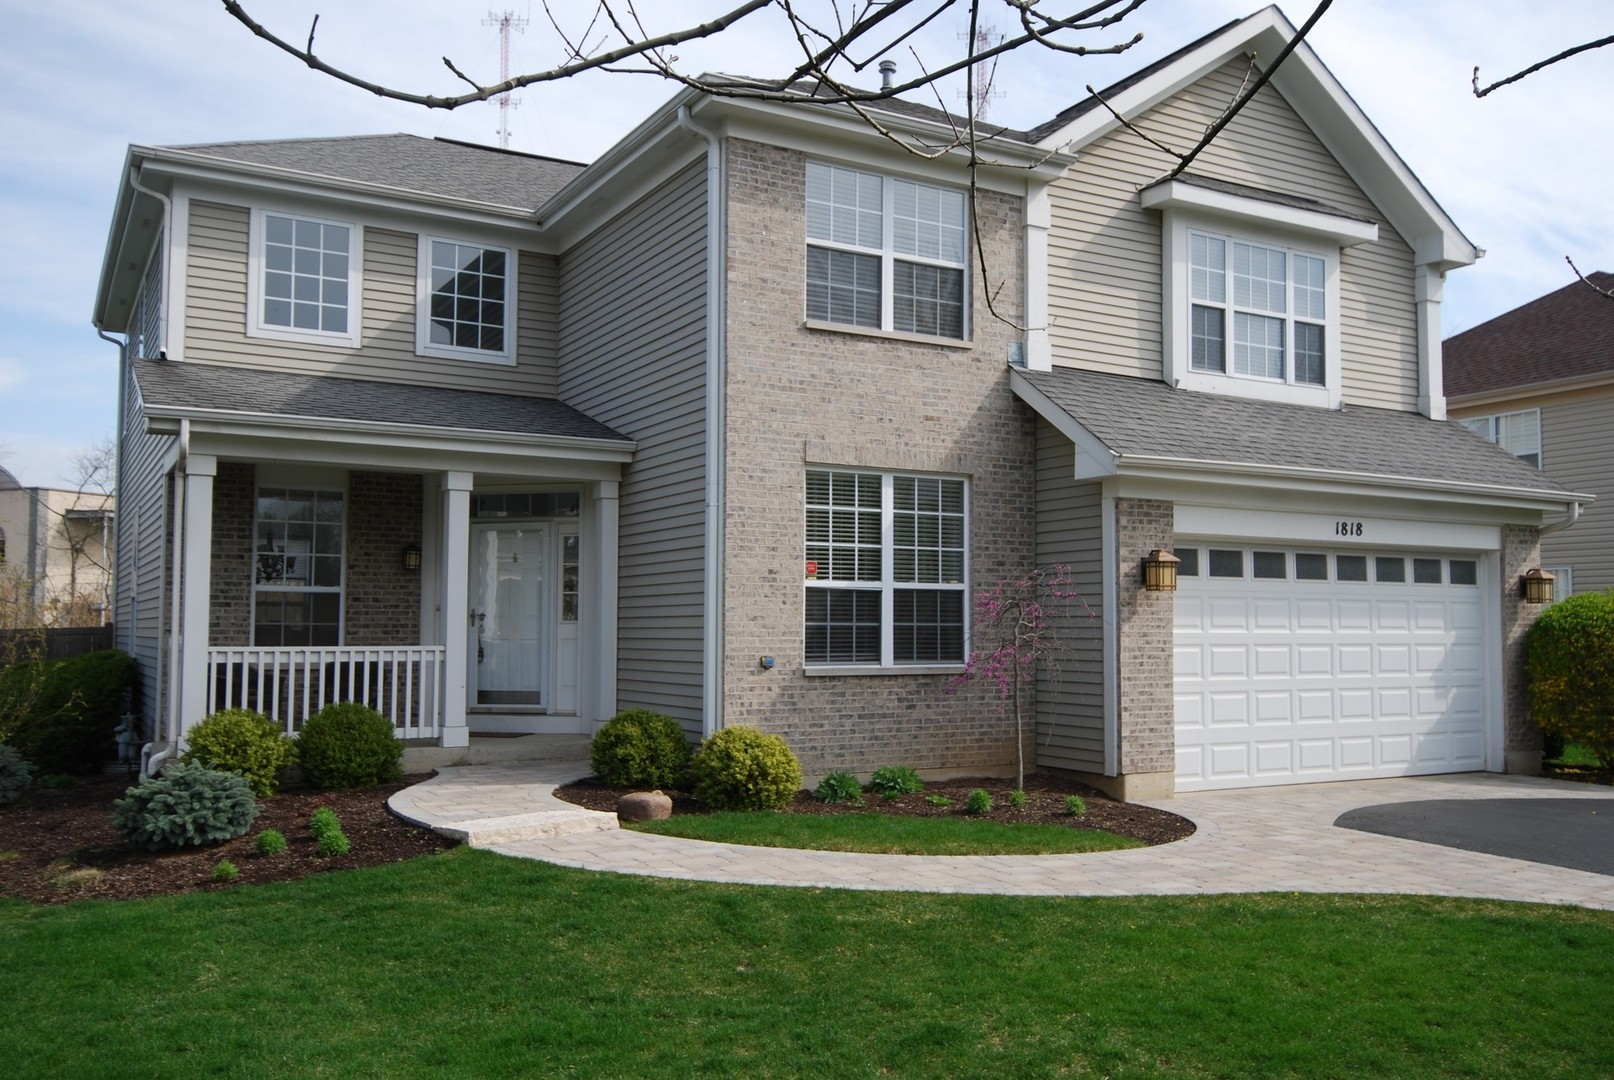 1818 South Waxwing Lane, Libertyville IL 60048